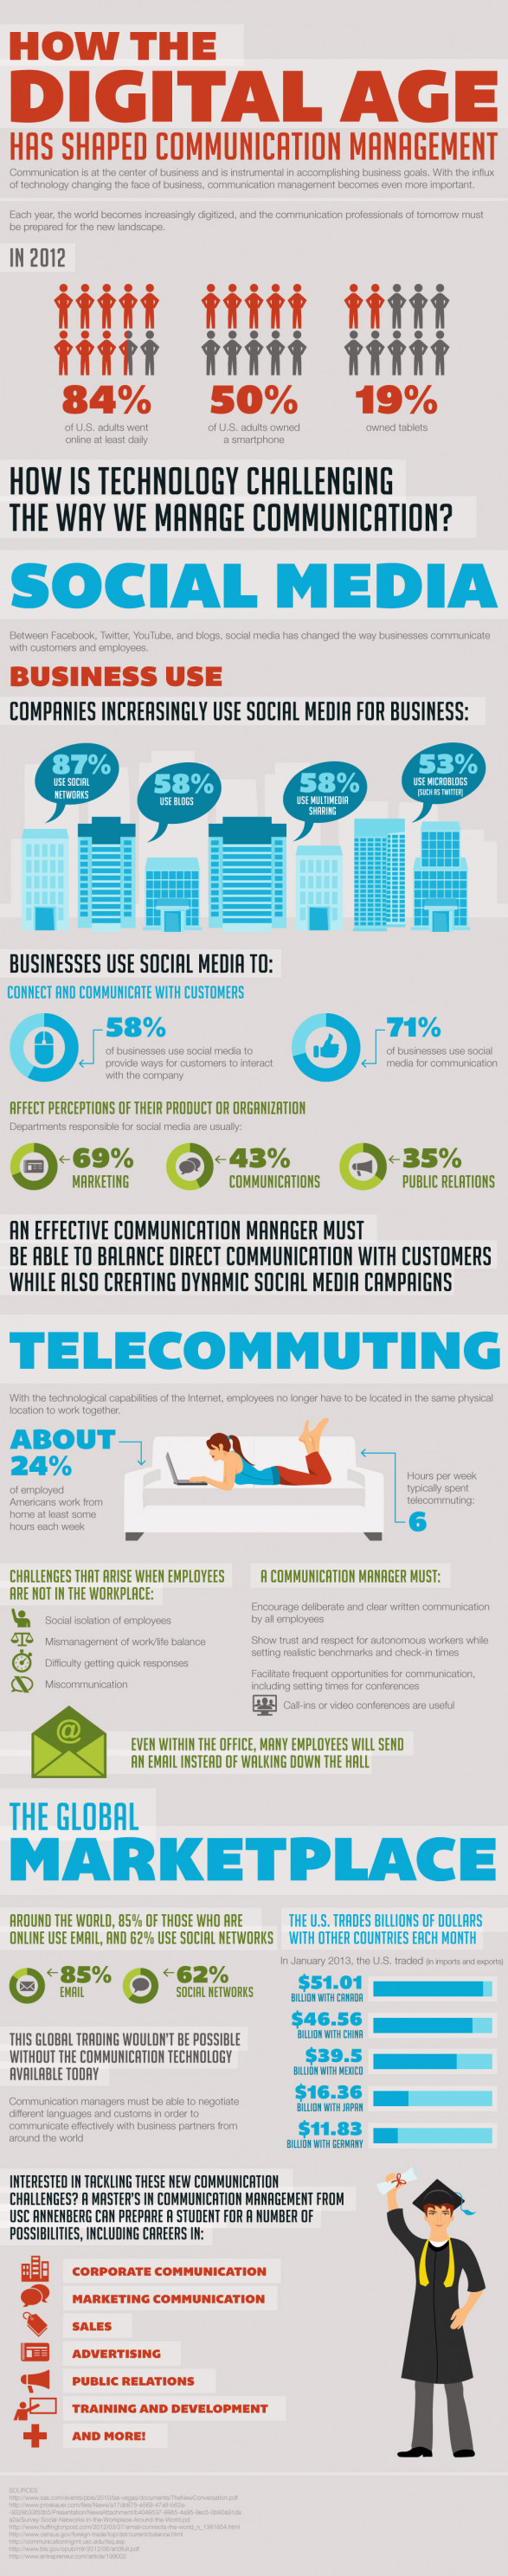 How the Digital Age Has Shaped Communication Management